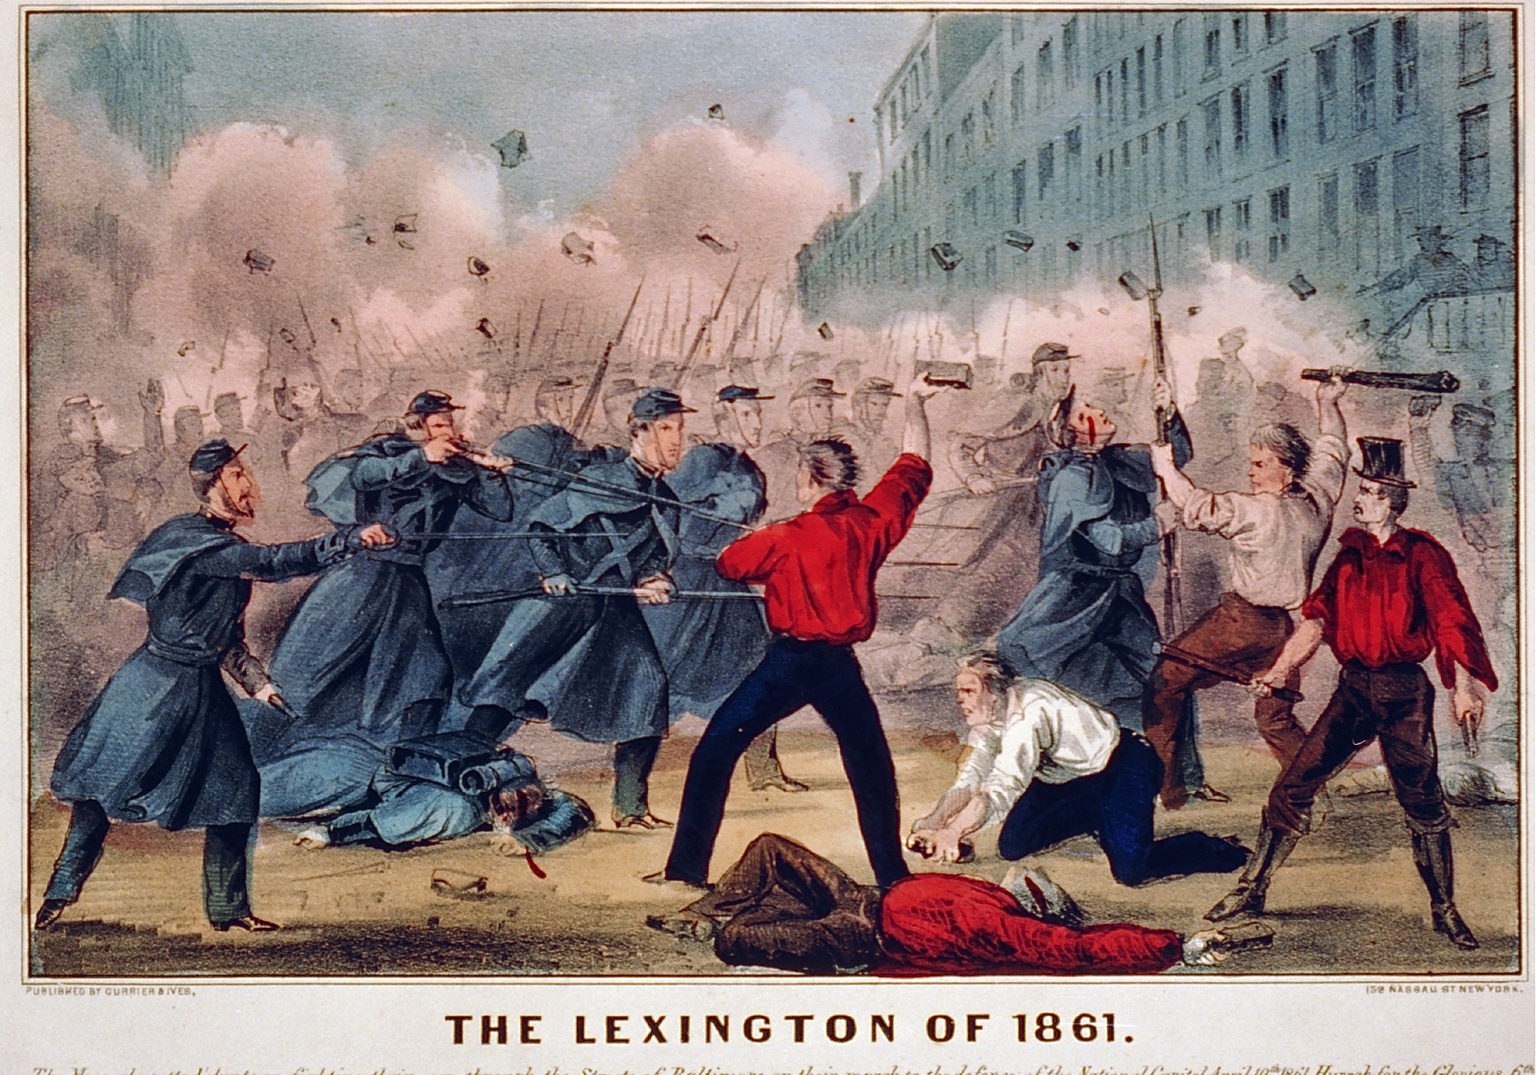 Lexington of 1861 Currier & Ives engraving